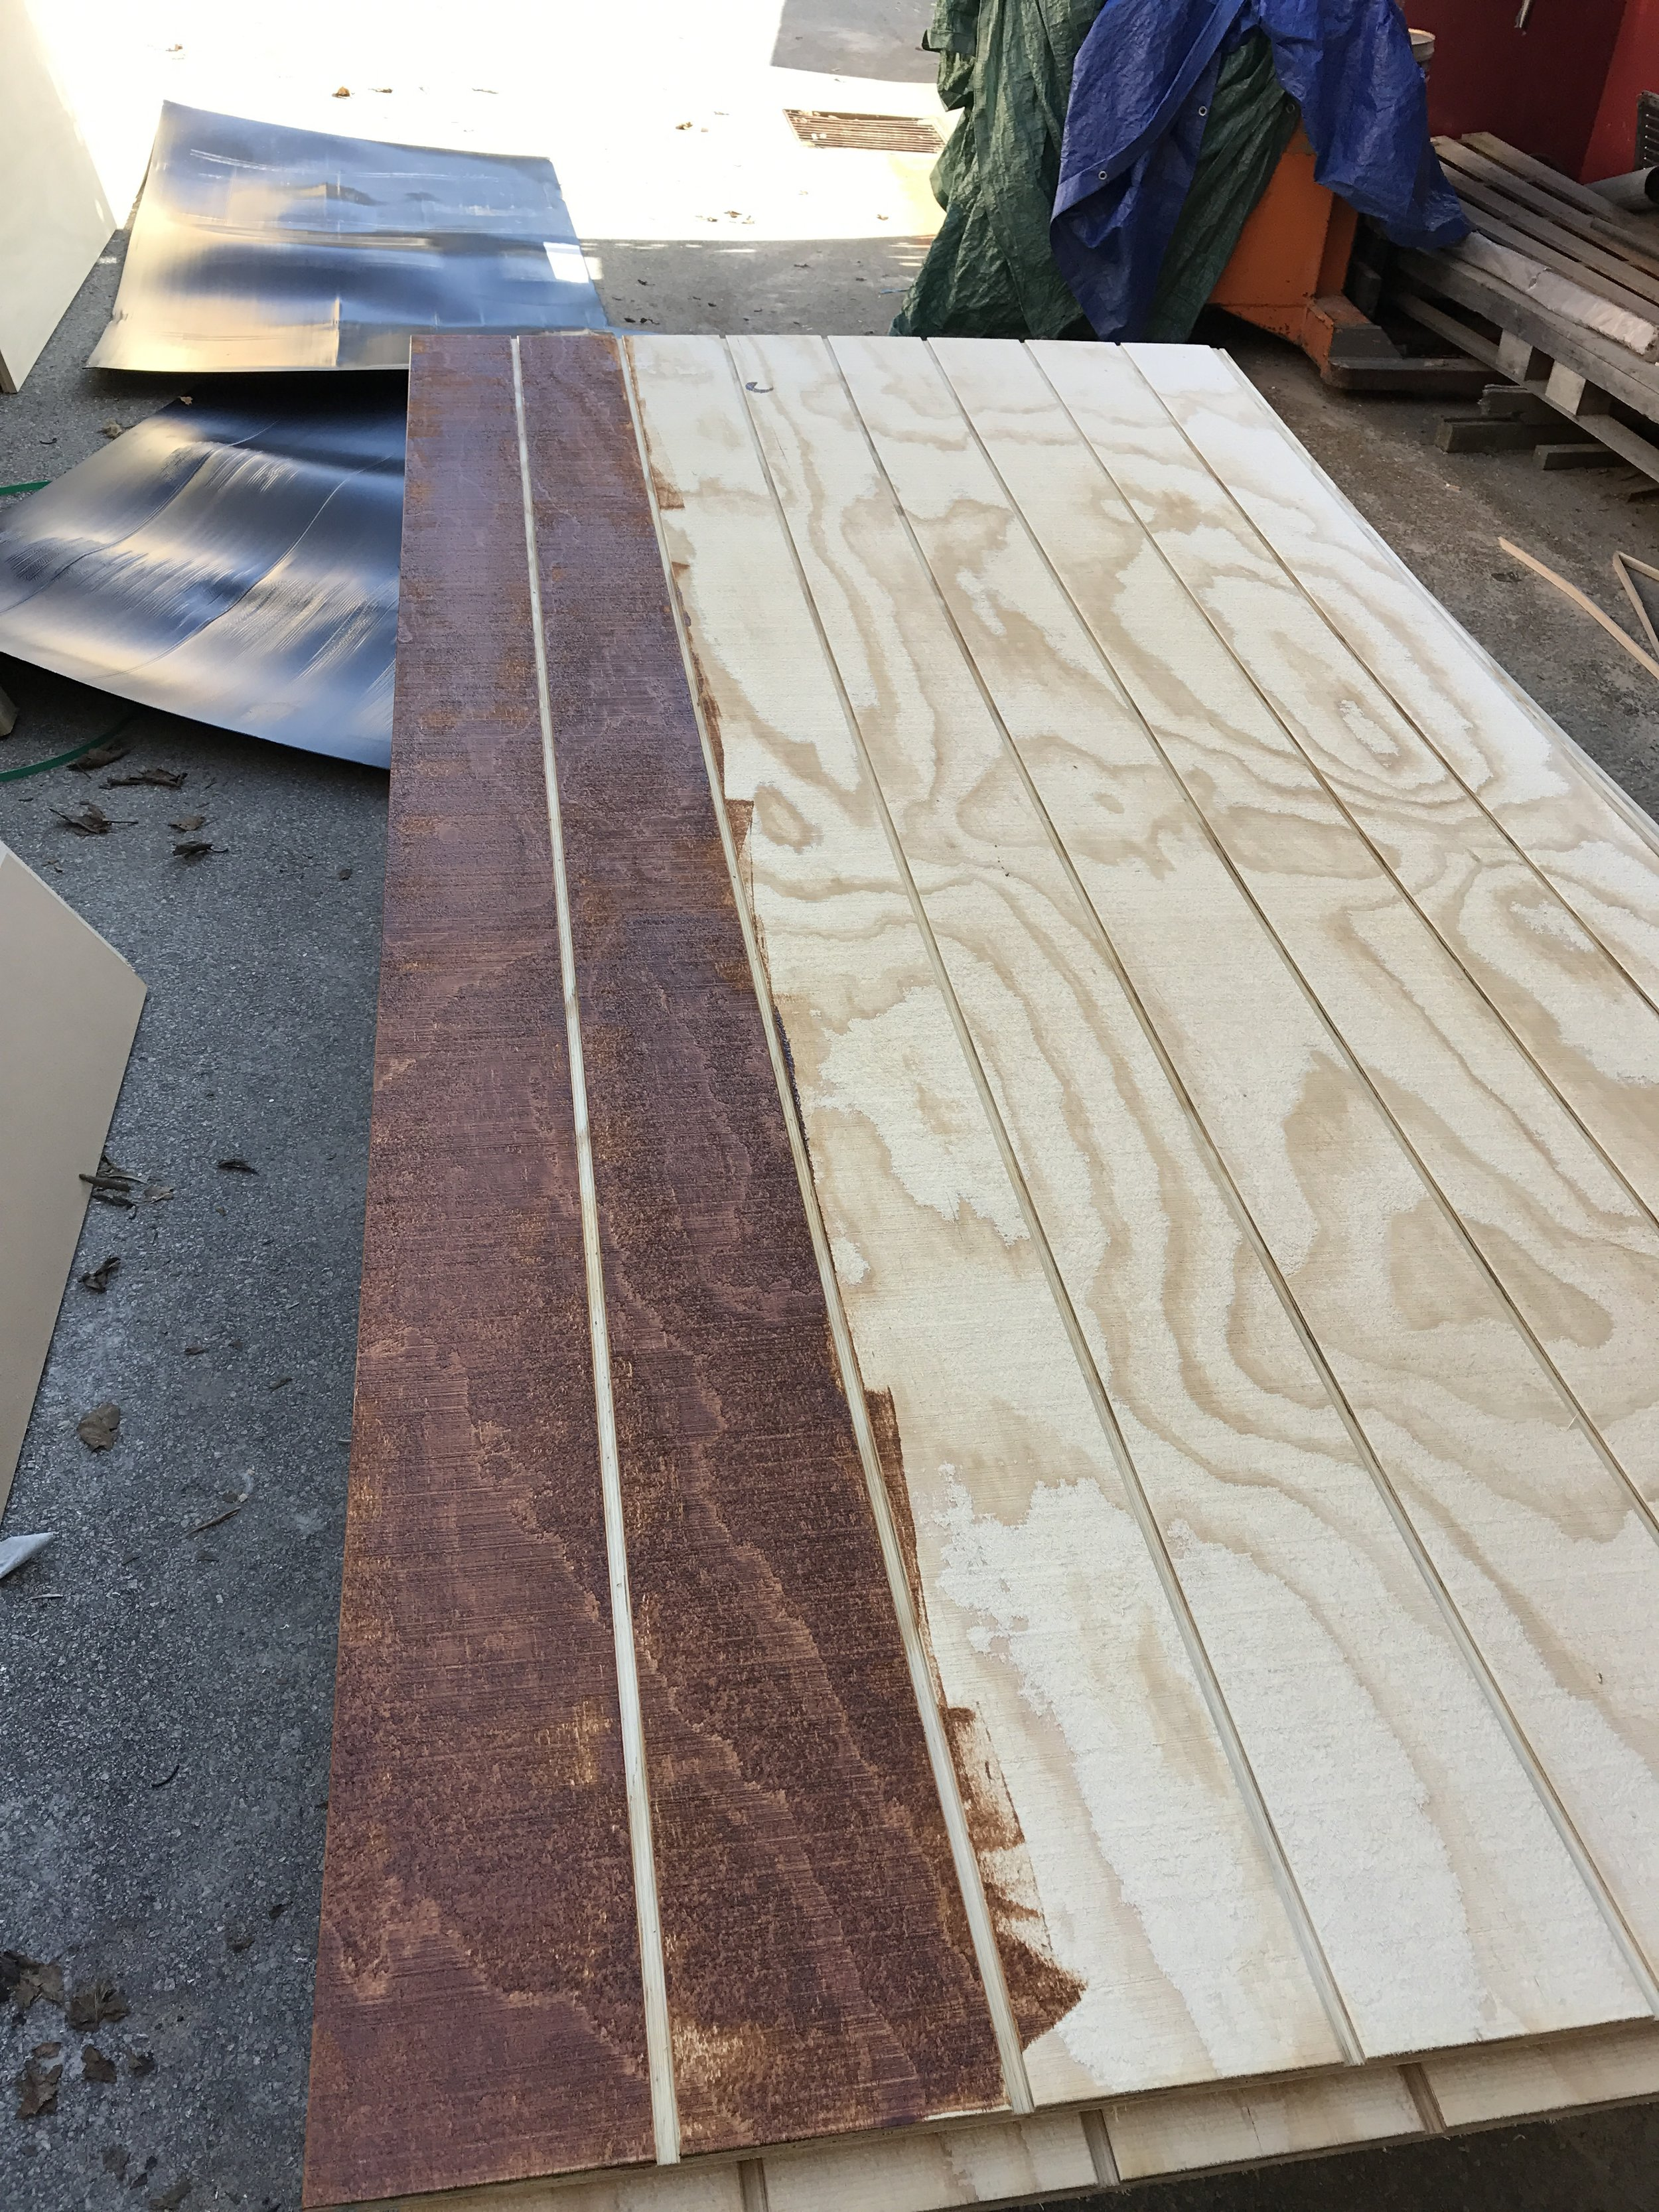 Staining the shadow clad with a teak stain